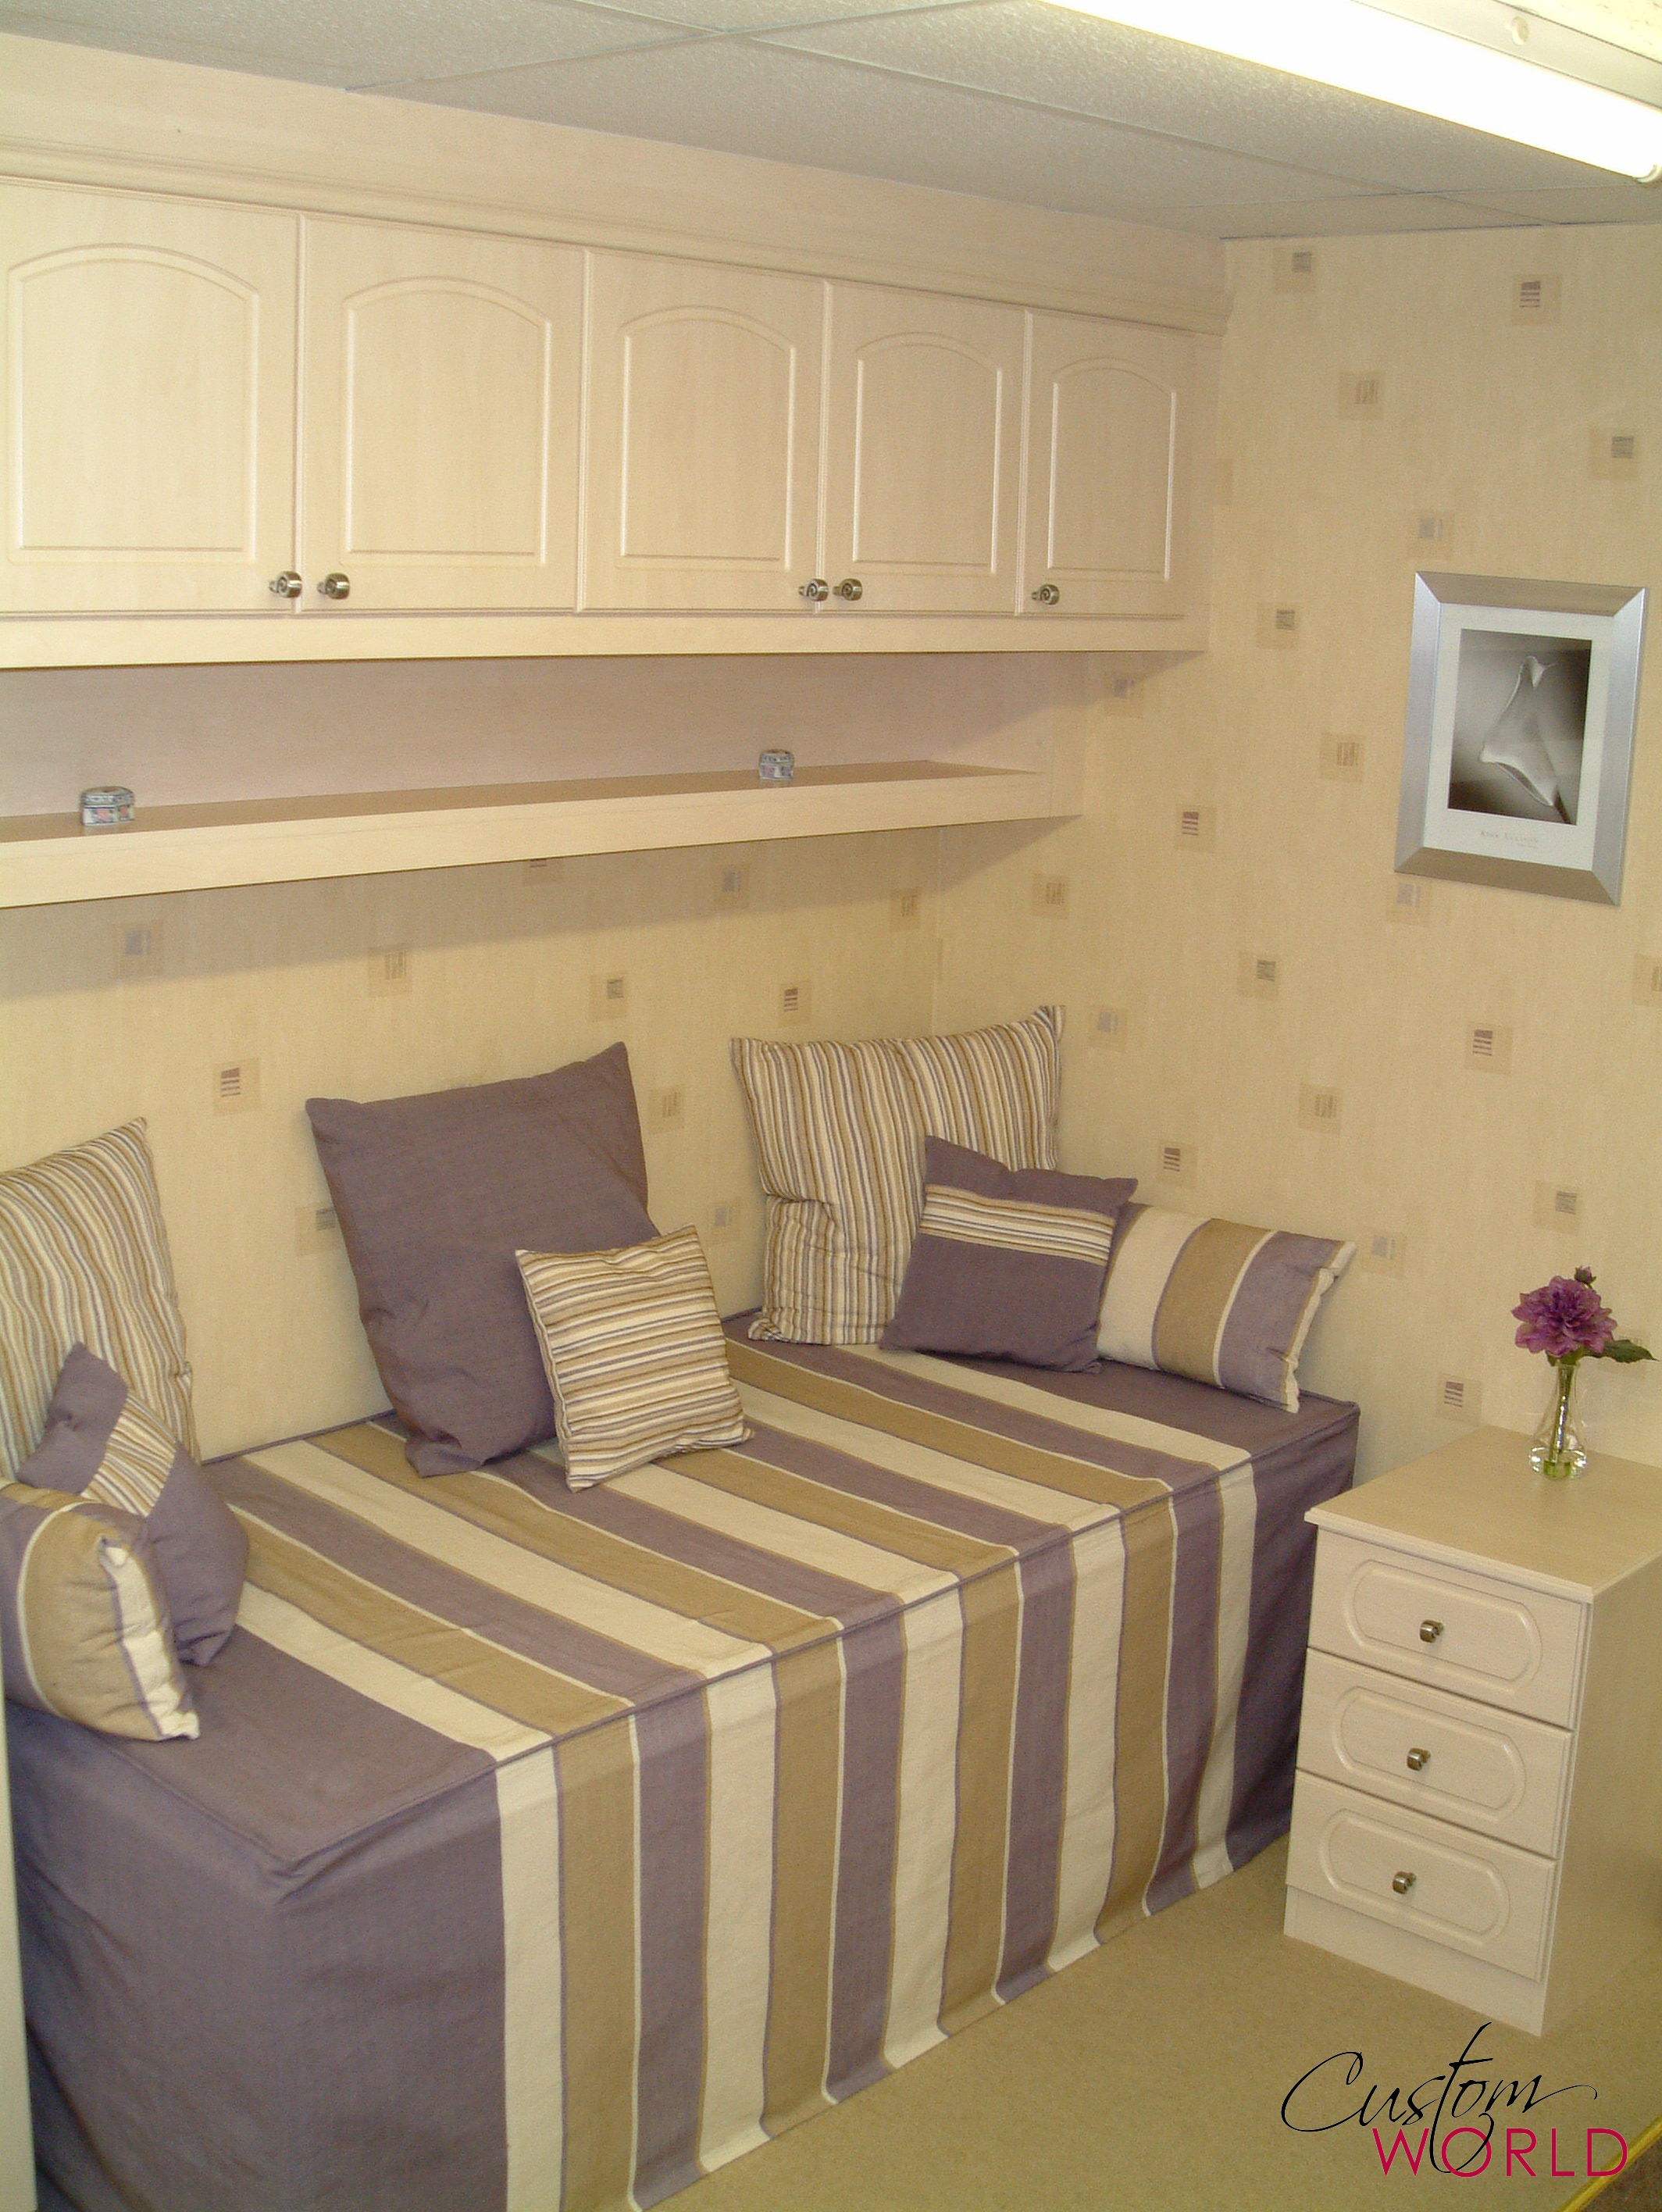 Made to measure cabin bed